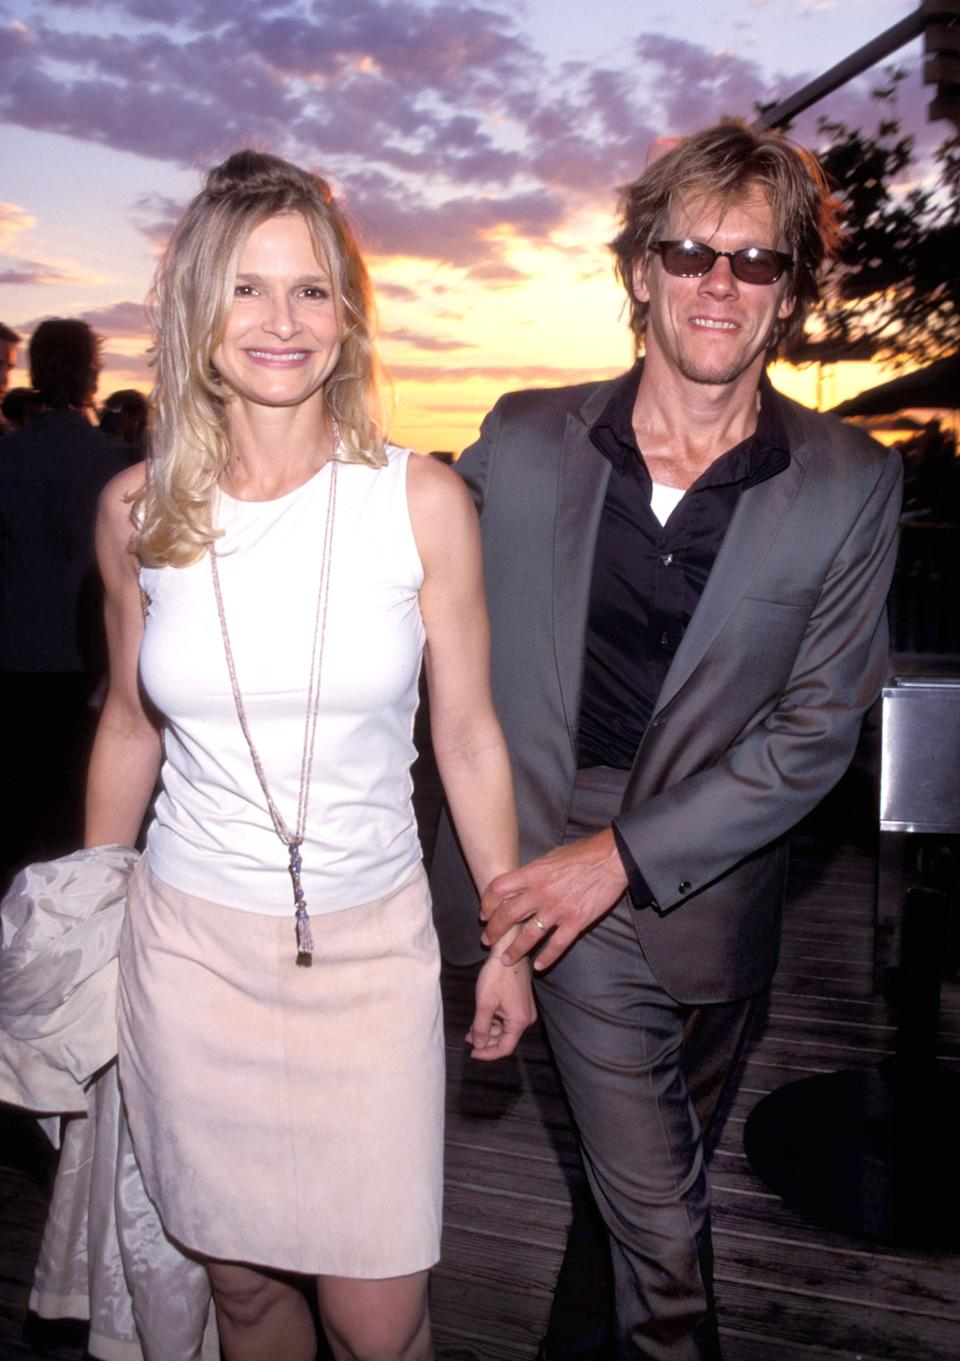 "<h1 class=""title"">""Talk"" Magazine Launch Party - August 2, 1999</h1> <div class=""caption""> Kyra and Kevin at a party on Liberty Island in New York </div> <cite class=""credit"">KMazur/Getty Images</cite>"